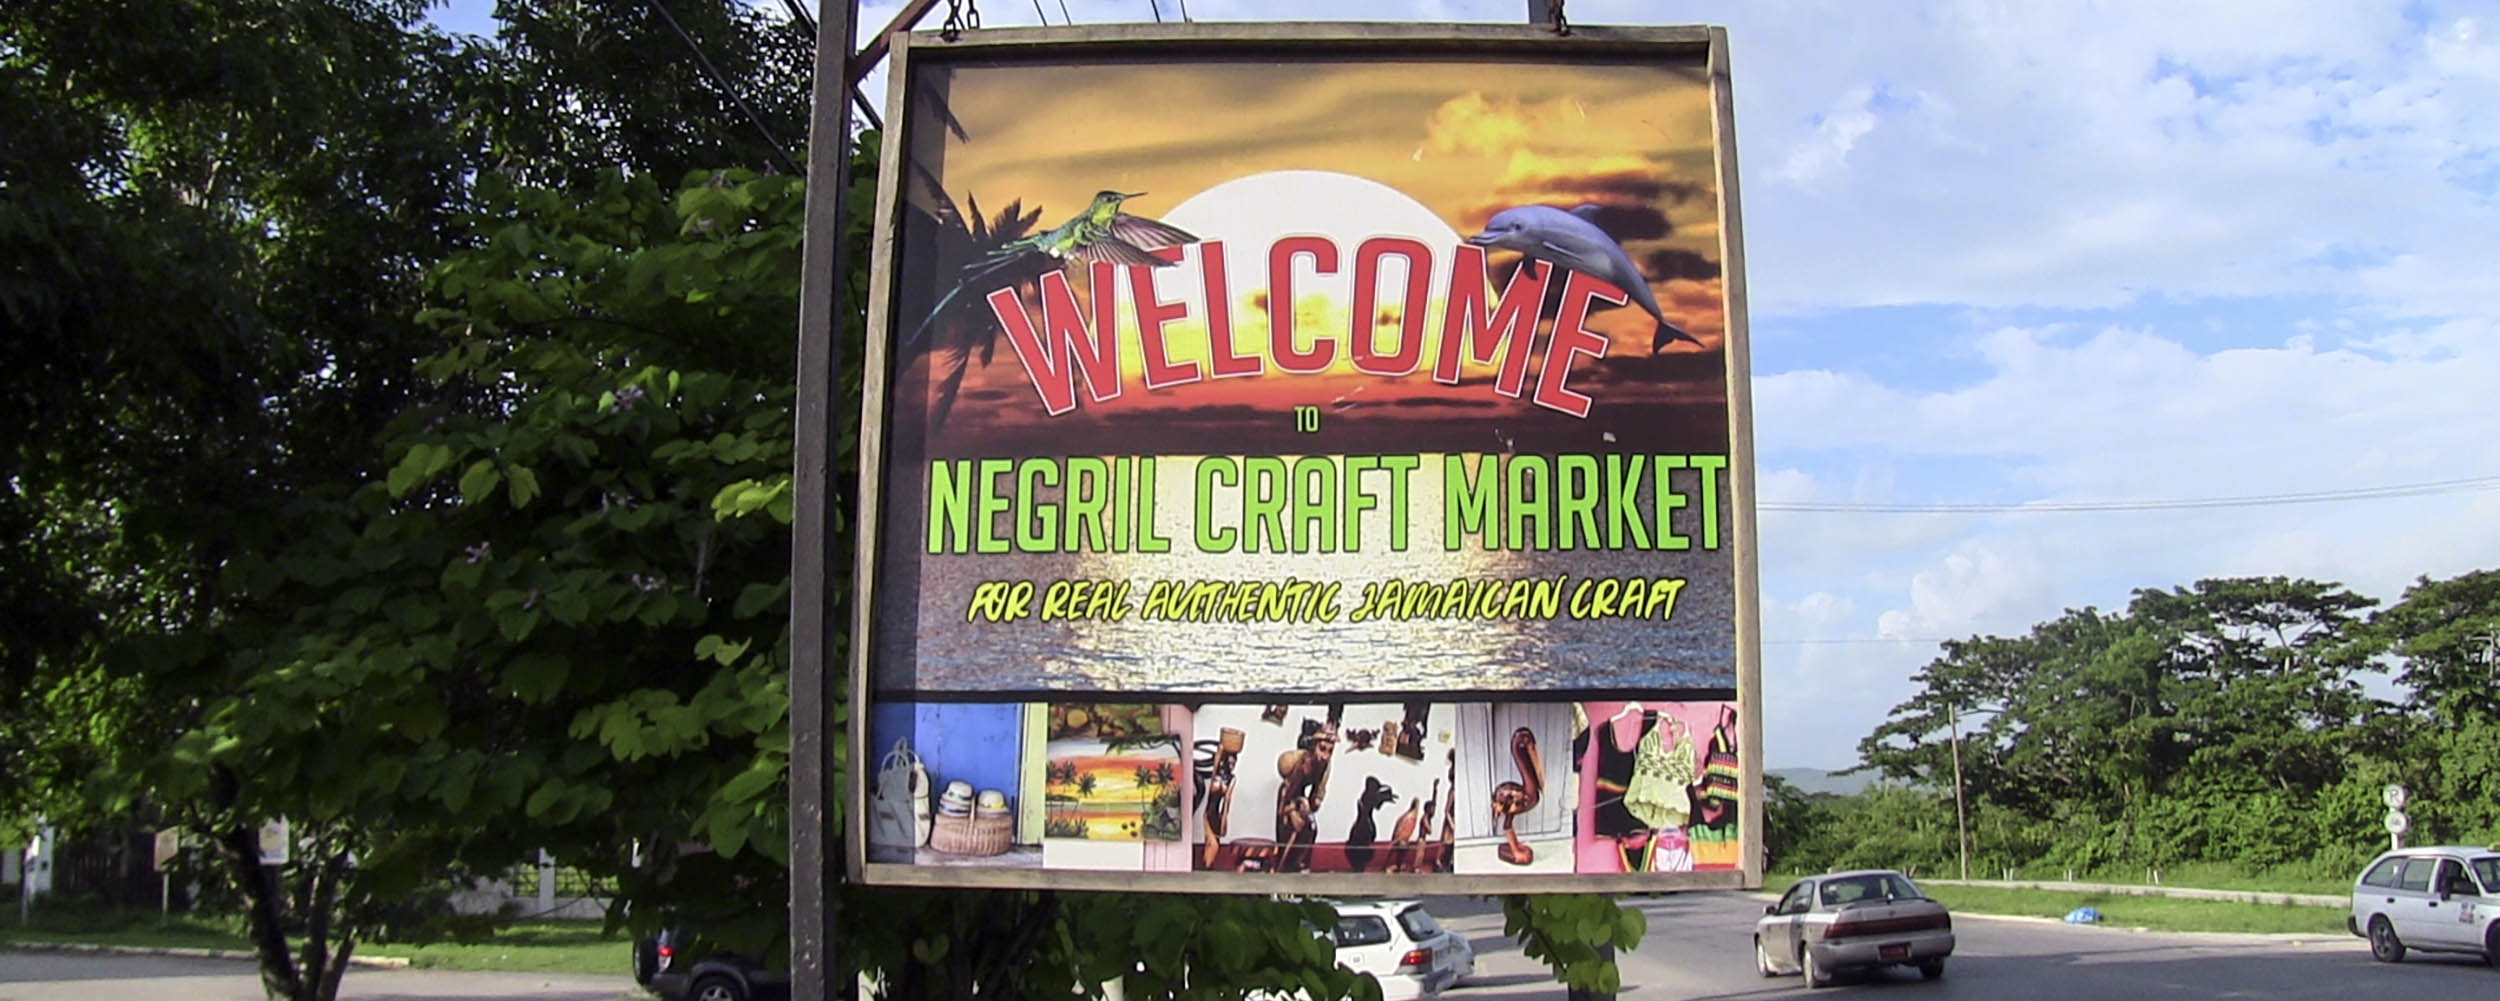 Negril Craft Market - Norman Manley Boulevard - Negril Jamaica